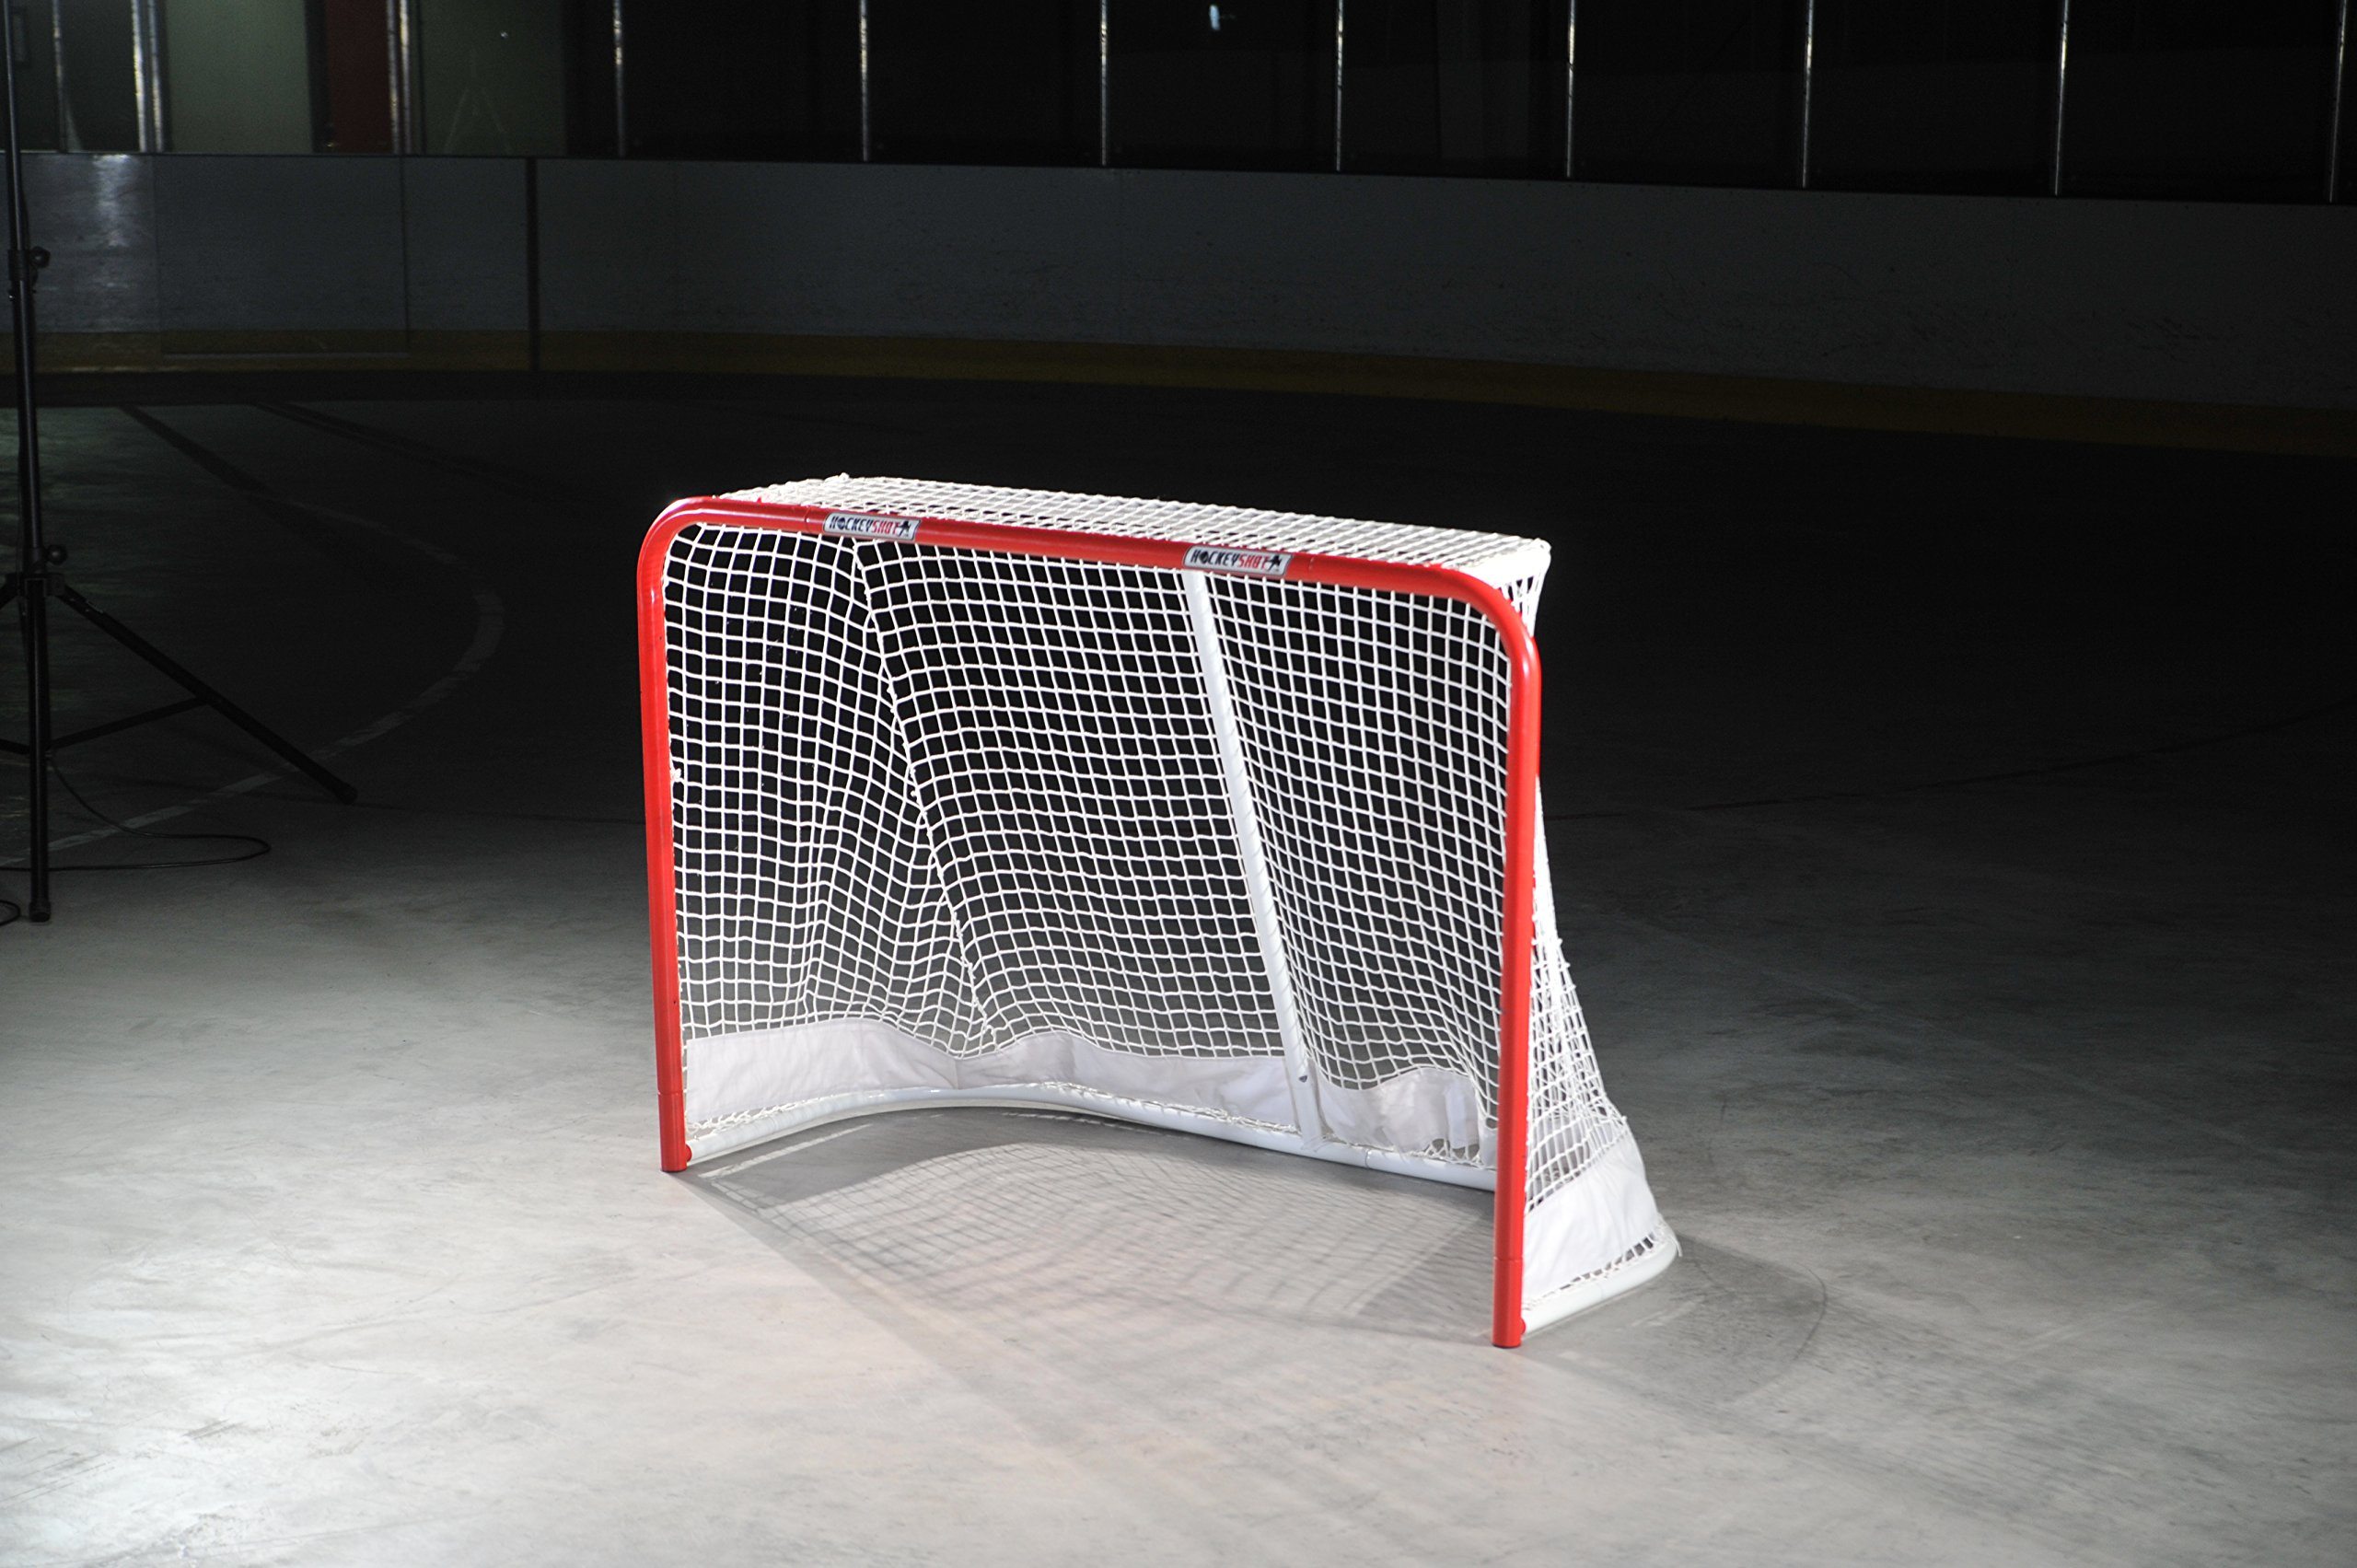 HOCKEYSHOT Goal Red Posts White Net Full Size Hockey Training Aids by HockeyShot